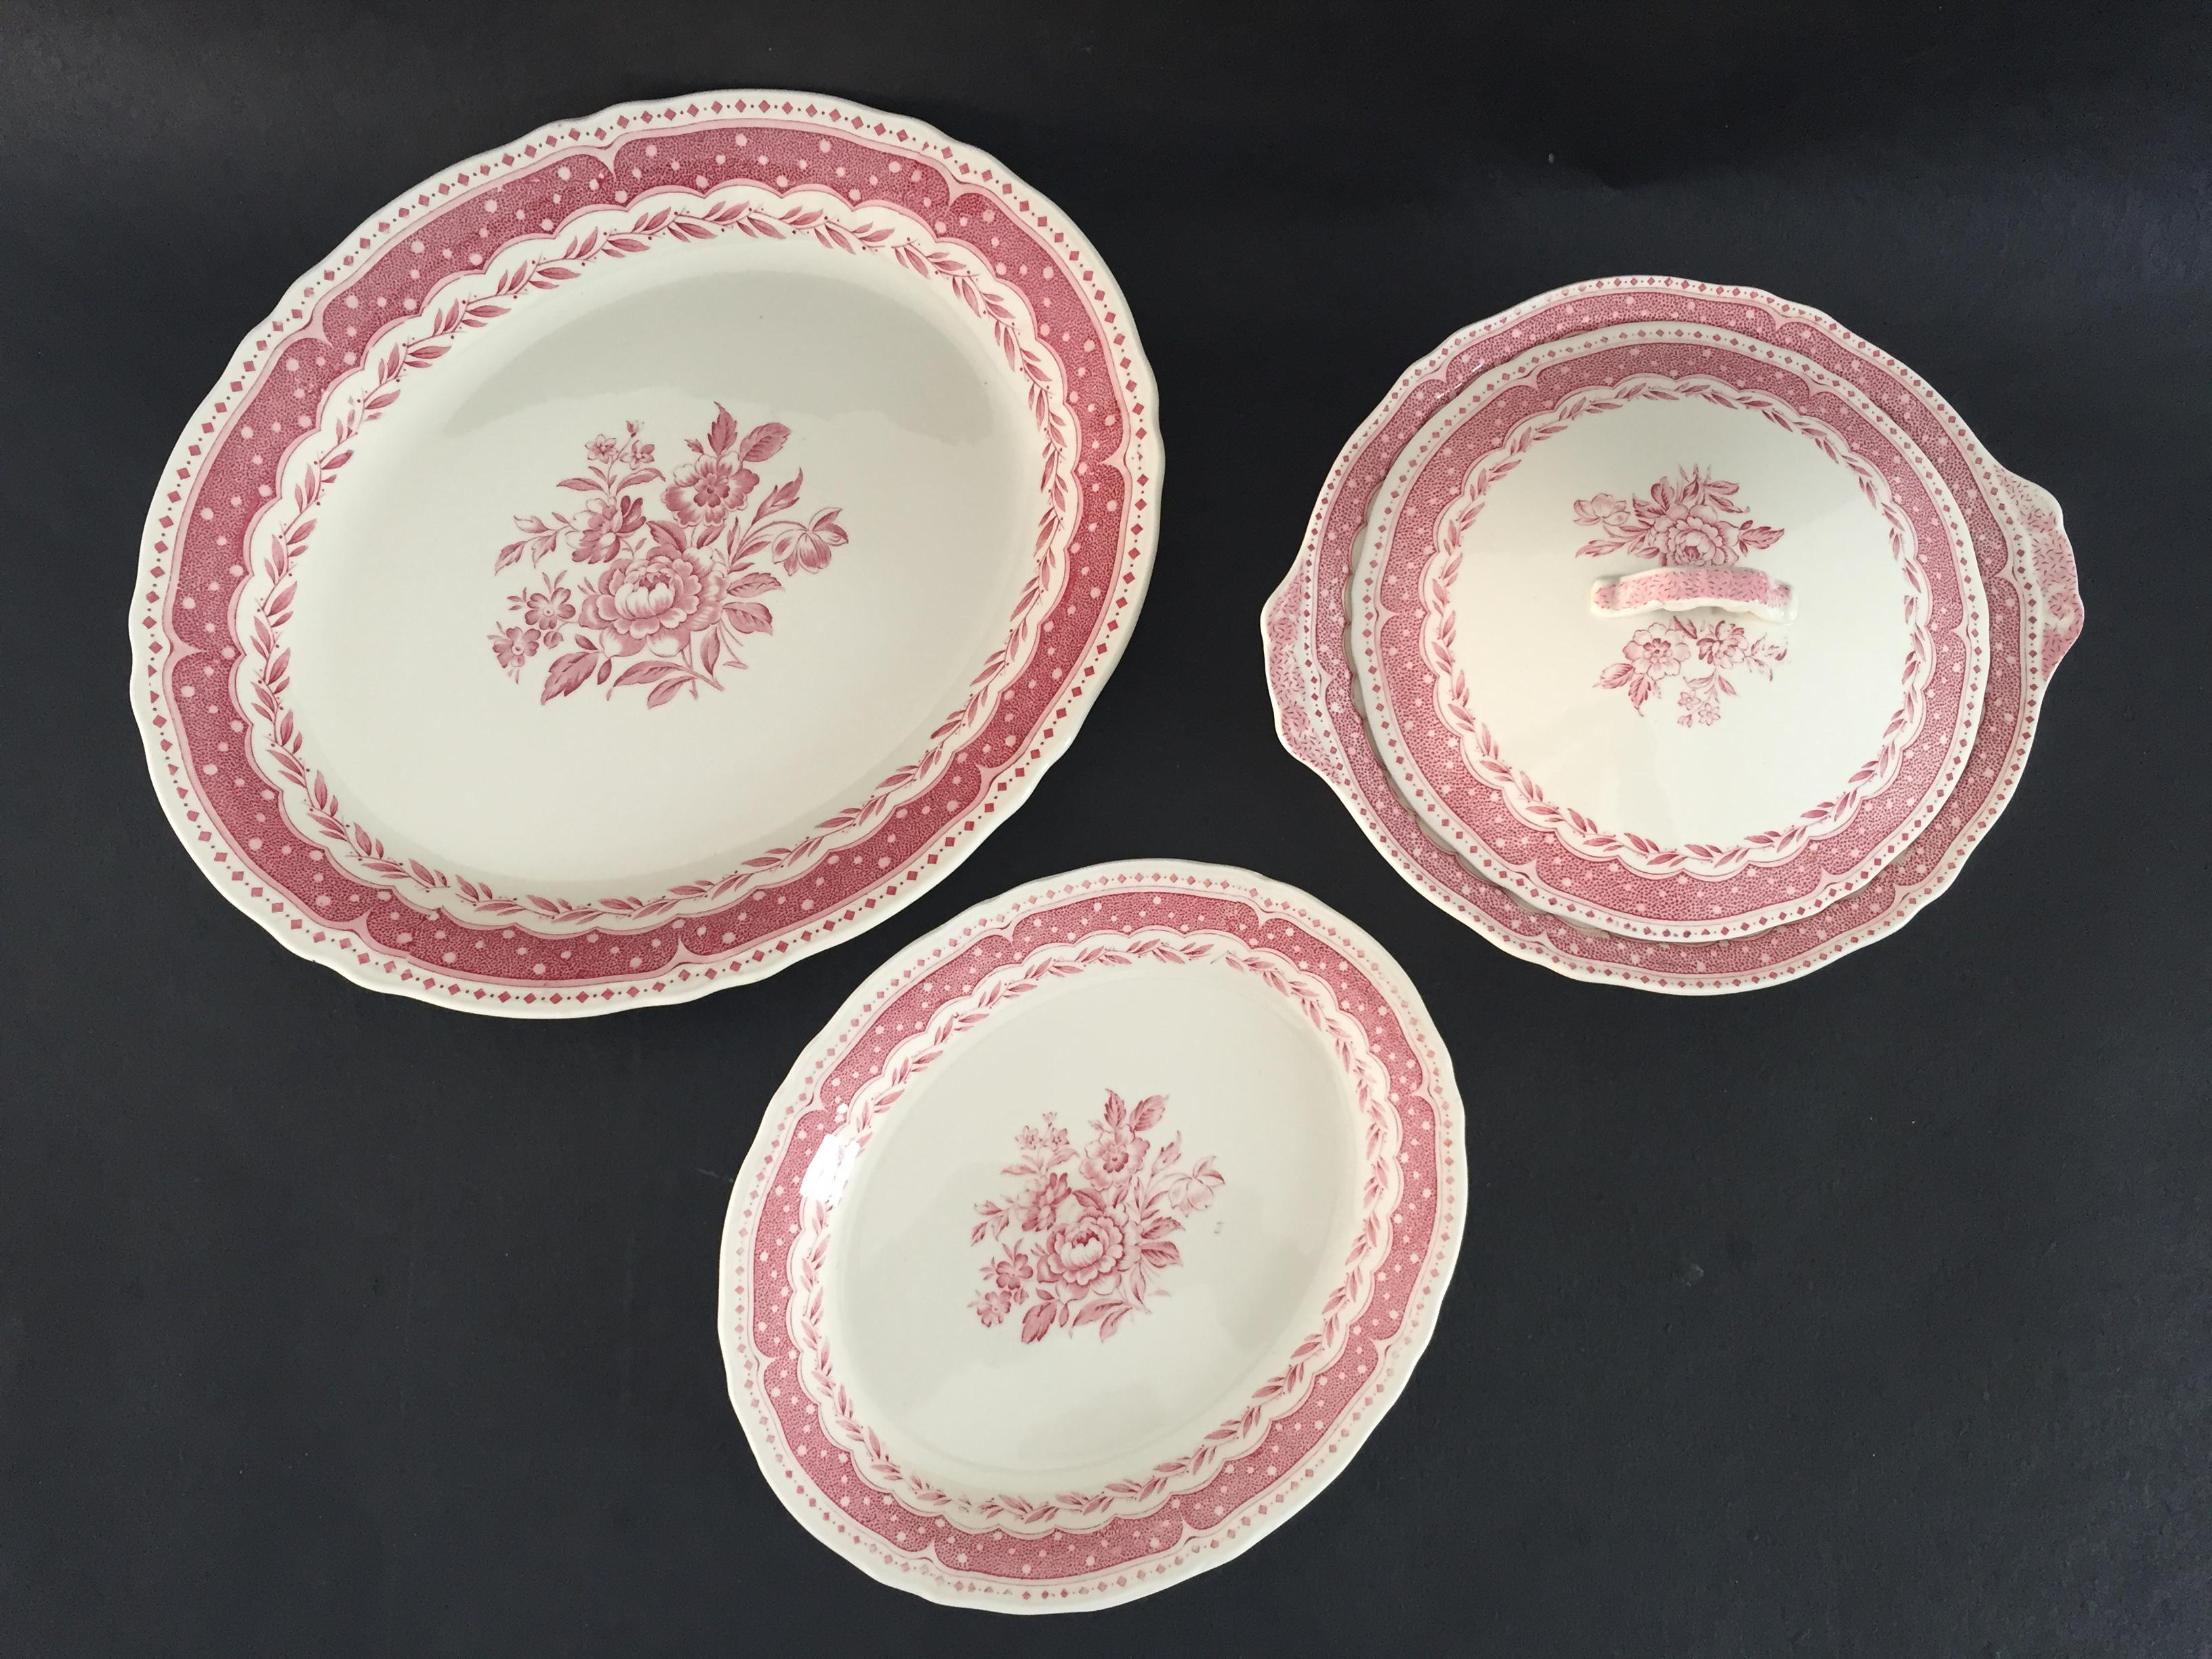 Vintage Avon Pattern Grindley-England Serving Dishes - Set of 3 - Image 8 of  sc 1 st  Chairish & Vintage Avon Pattern Grindley-England Serving Dishes - Set of 3 ...